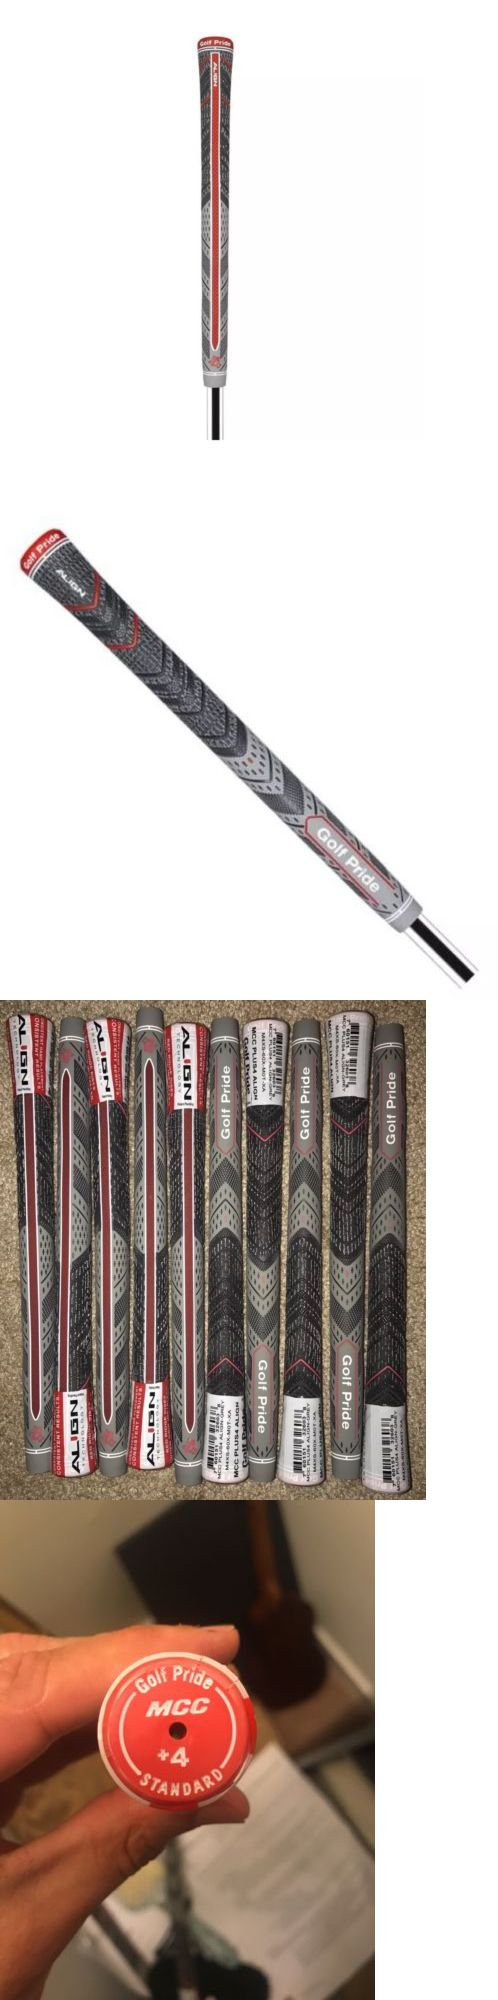 Golf Club Grips 47324: 10X Golf Pride Mcc Plus 4 Align Grips Grey Standard Size. Free Shipping!!! -> BUY IT NOW ONLY: $75 on eBay!